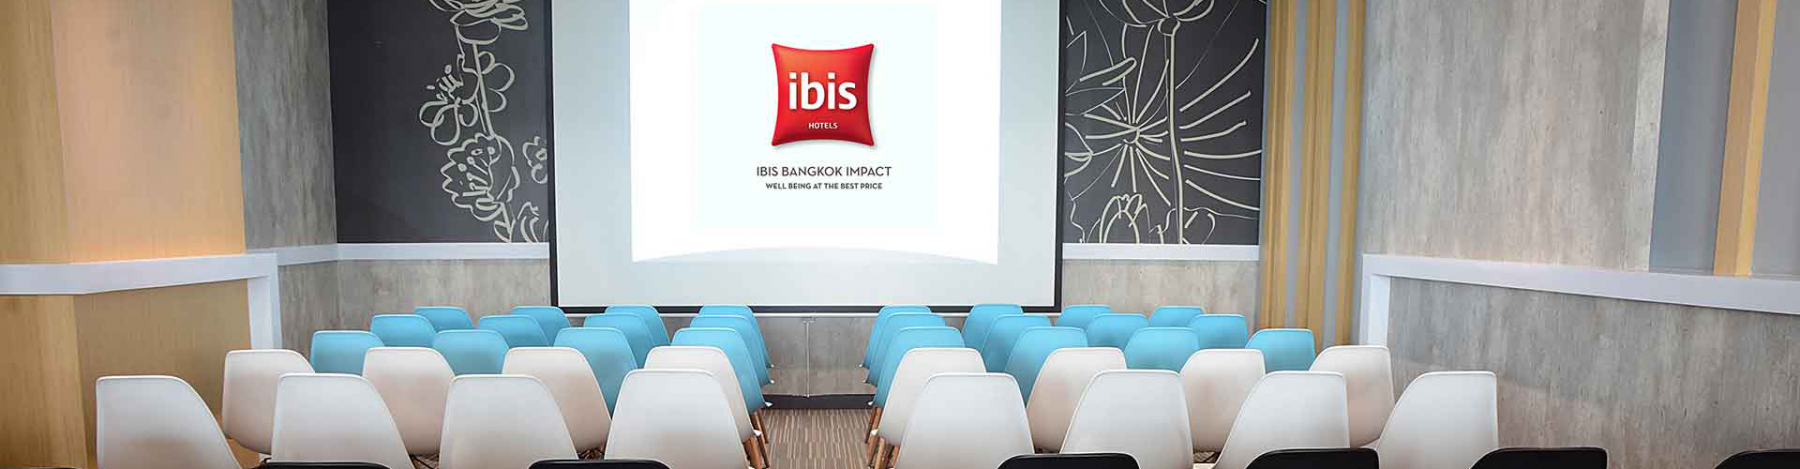 meeting-venue-at-ibis-bangkok-impact